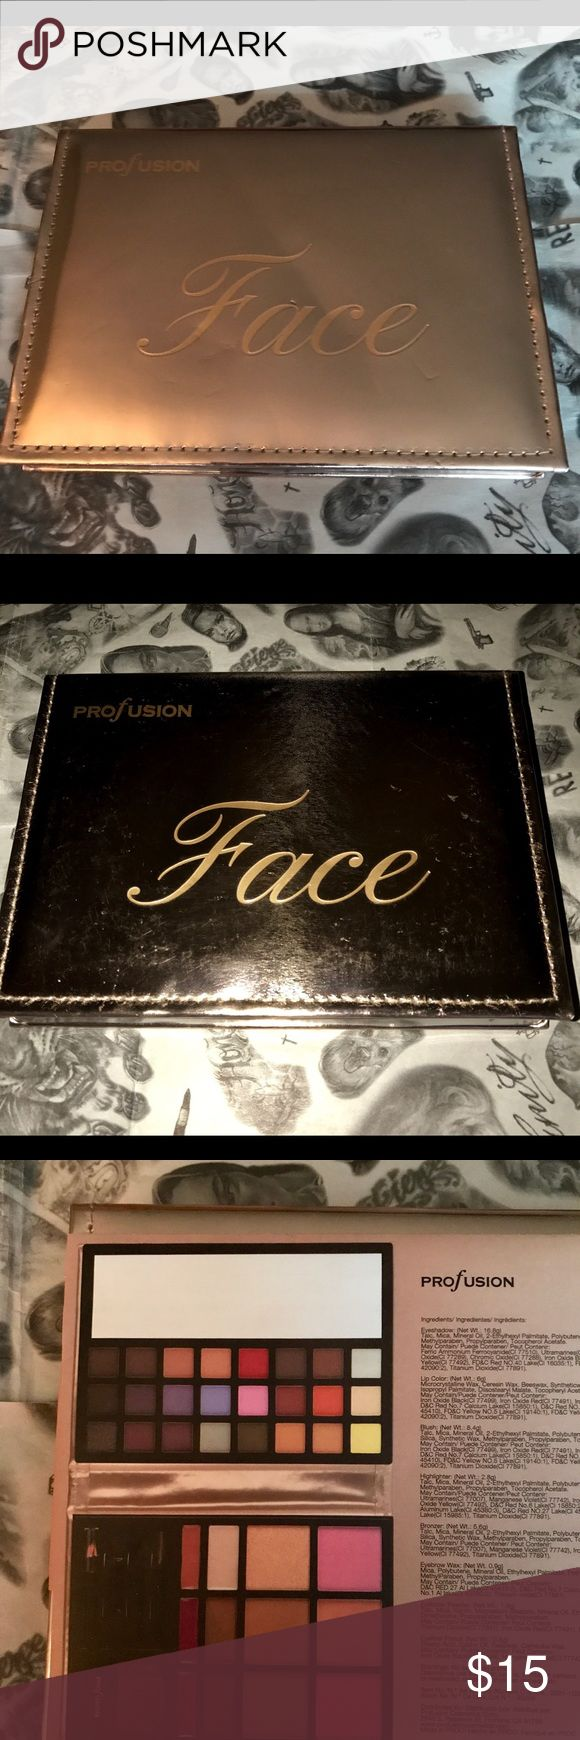 PROFUSION FACE BOOK OF MAKEUP 💄💋💞 PROFUSION FULL FACE PALETTE! 🙌🏼 This baby has it all! 24 eyeshadows in different finishes. (Matte & Metallic)  Has 3 blushes. Light pink, Warm Peach & Coral Pink! The coral pink has shimmer 😍It also has 3 Highlight/Bronzers! A champagne highlight, light bronze highlight & a shadow bronze for contouring! The champagne & light bronze highlighters are sparkling! Also comes with brow wax It has medium & Dark brown brow powder. It also has 3 Lip colors! It…